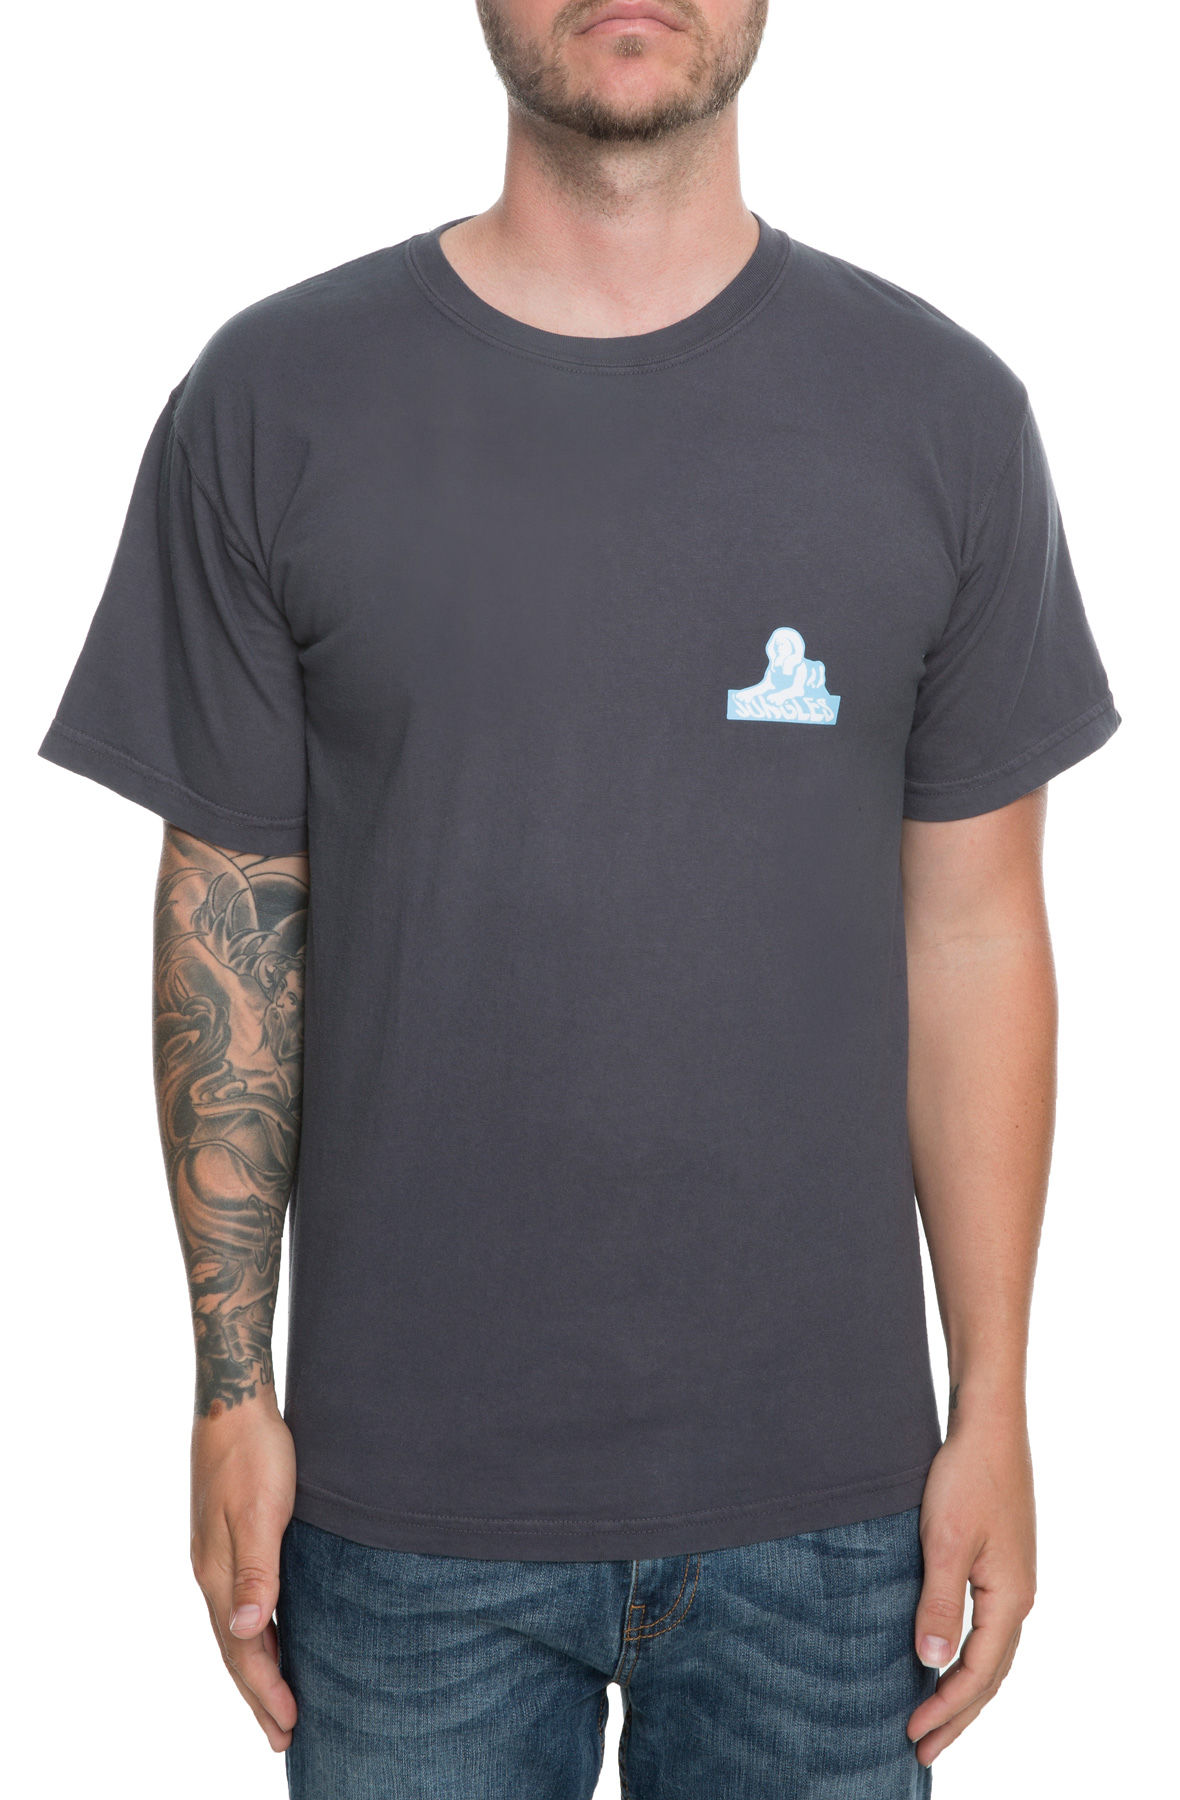 Image of The Sphinx Logo Tee in Grape